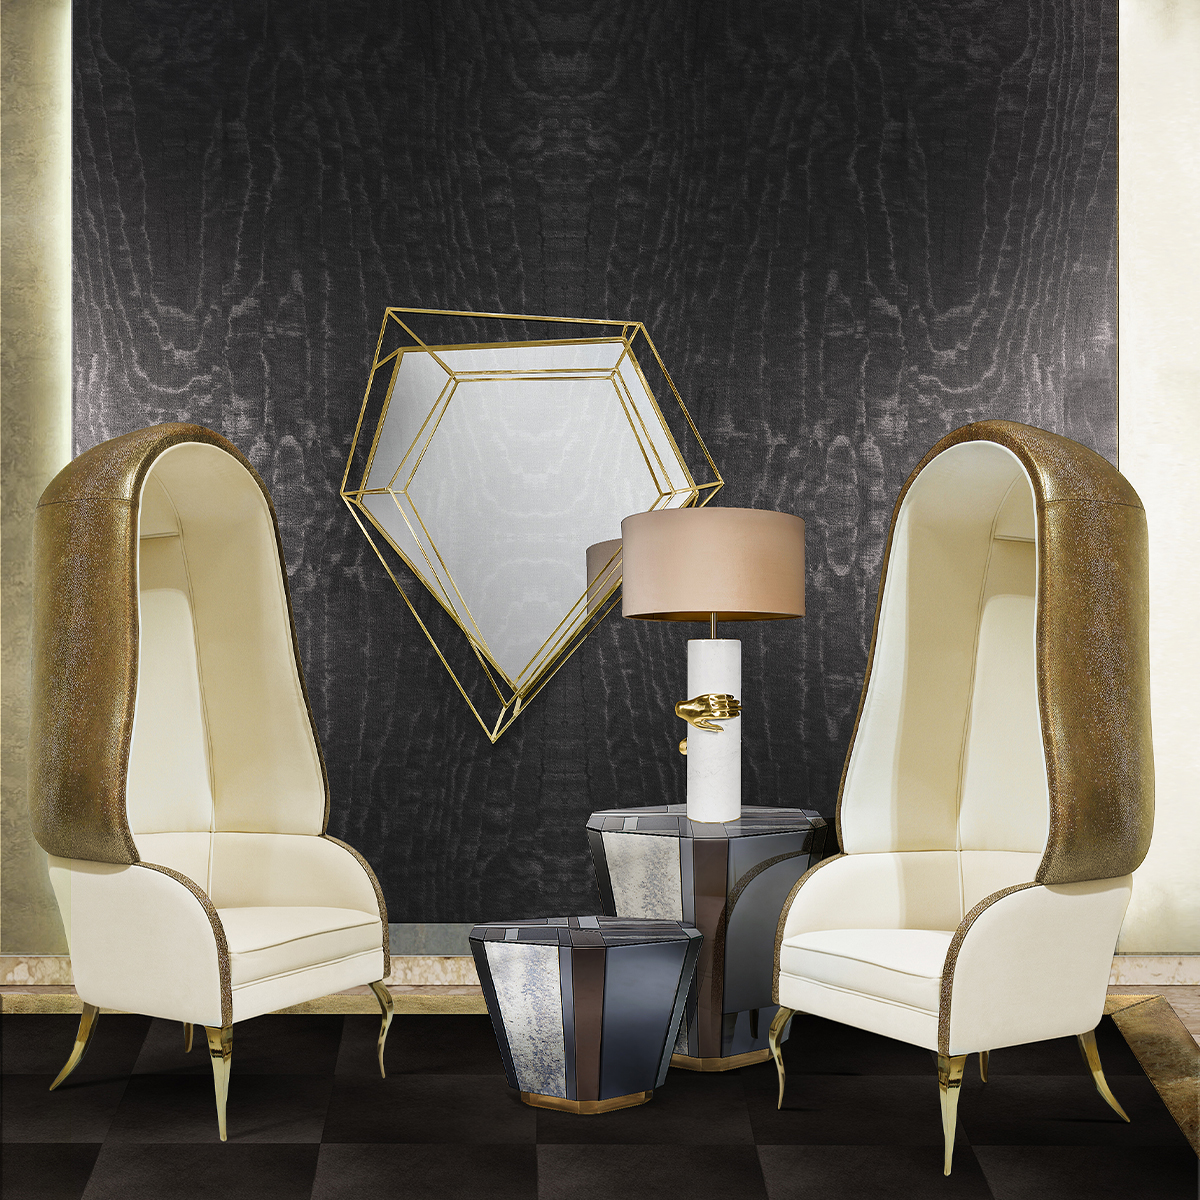 Top 25 Luxury Mirrors That Will Enhance Your Home_3 luxury mirrors Top 20 Luxury Mirrors That Will Enhance Your Home Top 25 Luxury Mirrors That Will Enhance Your Home 3